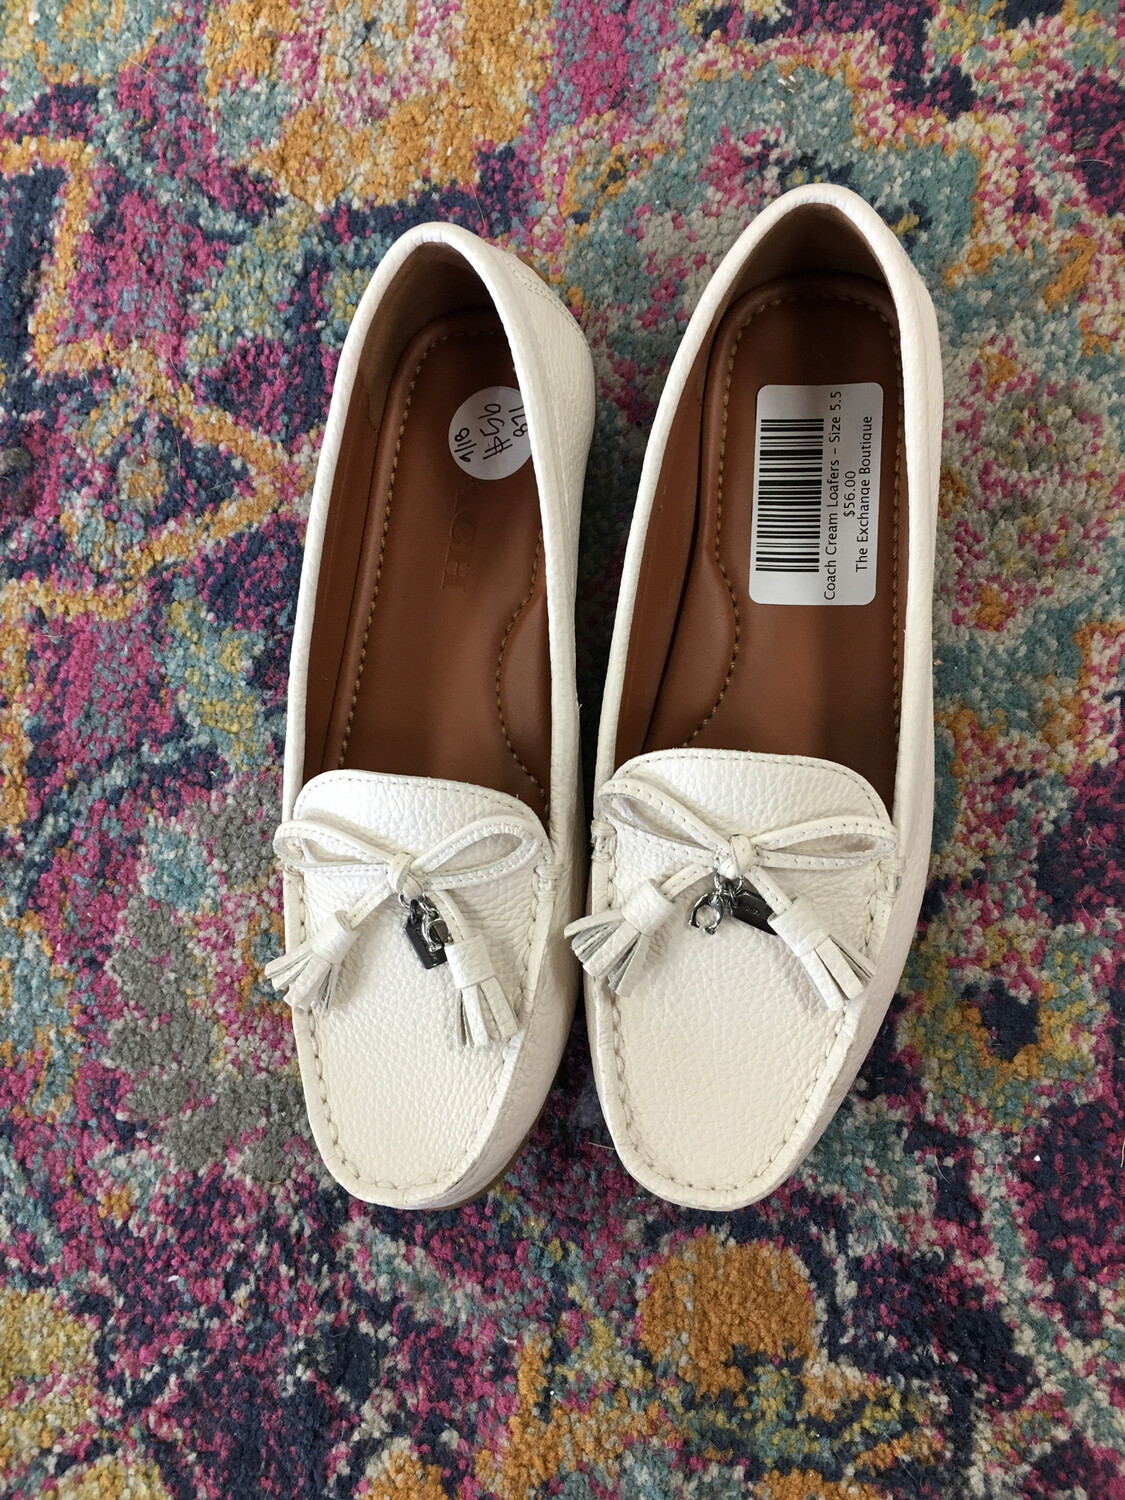 Coach Cream Loafers - Size 5.5